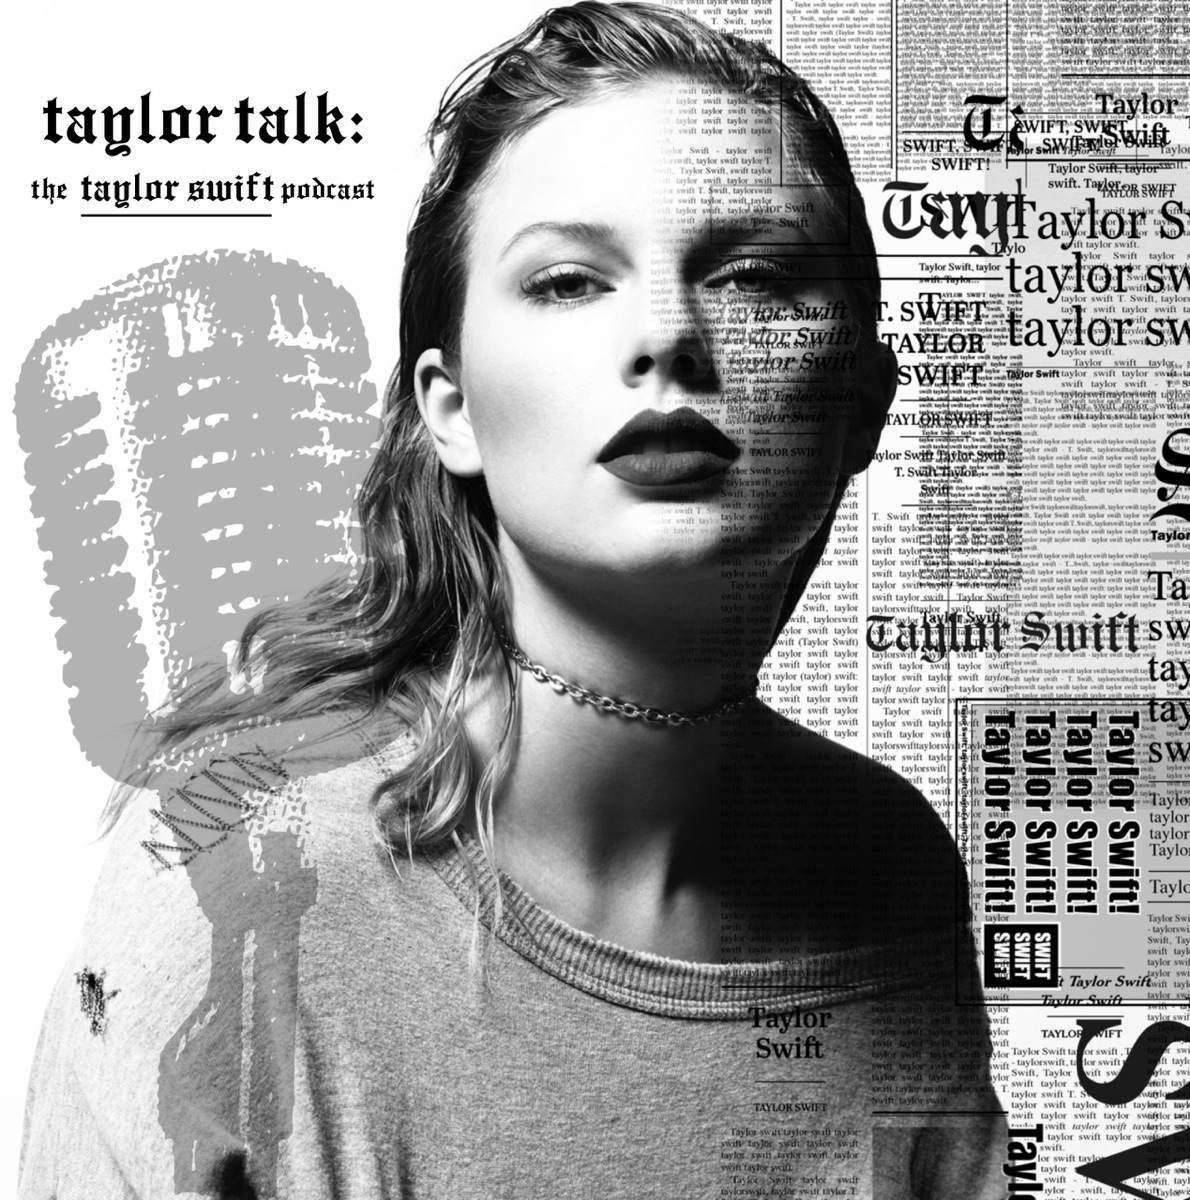 Taylor Talk The Taylor Swift Podcast  reputation  1989  Red  Speak Now  Fearless  Taylor Swift TaylorTalkorg - The Taylor Swift Podcast by Adam Bromberg Diane Sami Steve CD cover